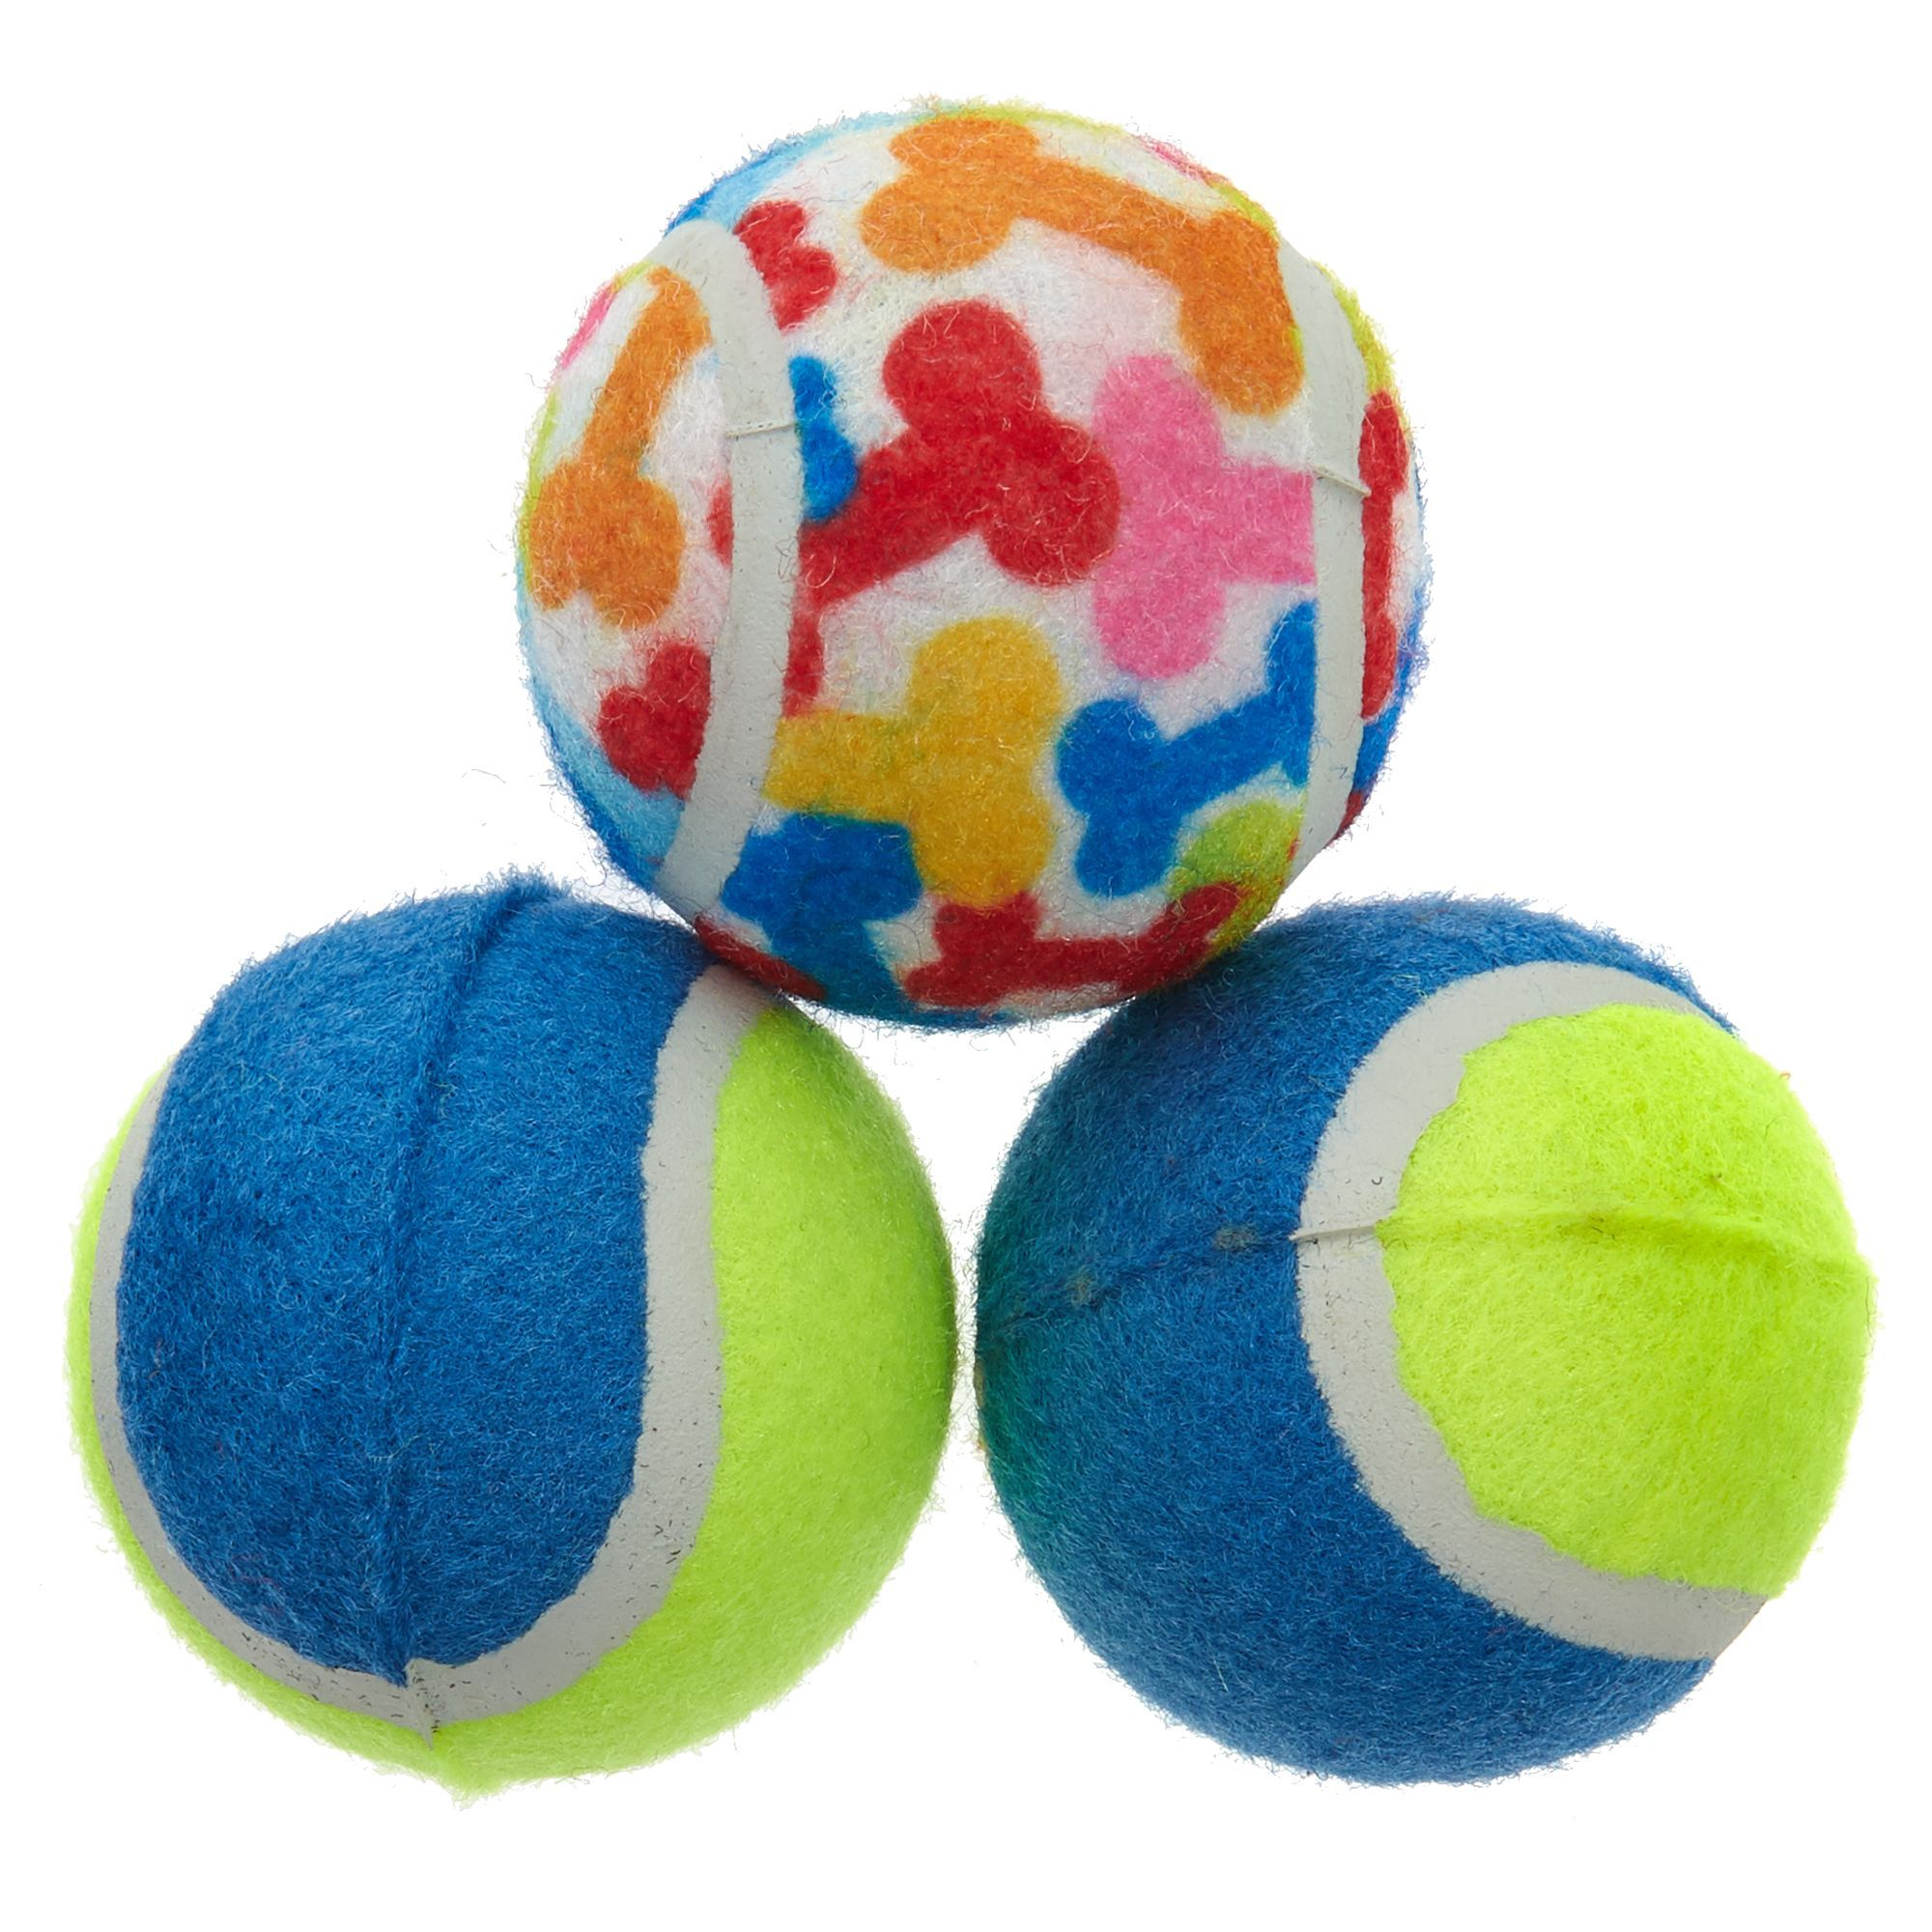 Toys R Us Pets Tennis Balls Dog Toys 3 Pack Size 2 5 In Toys R